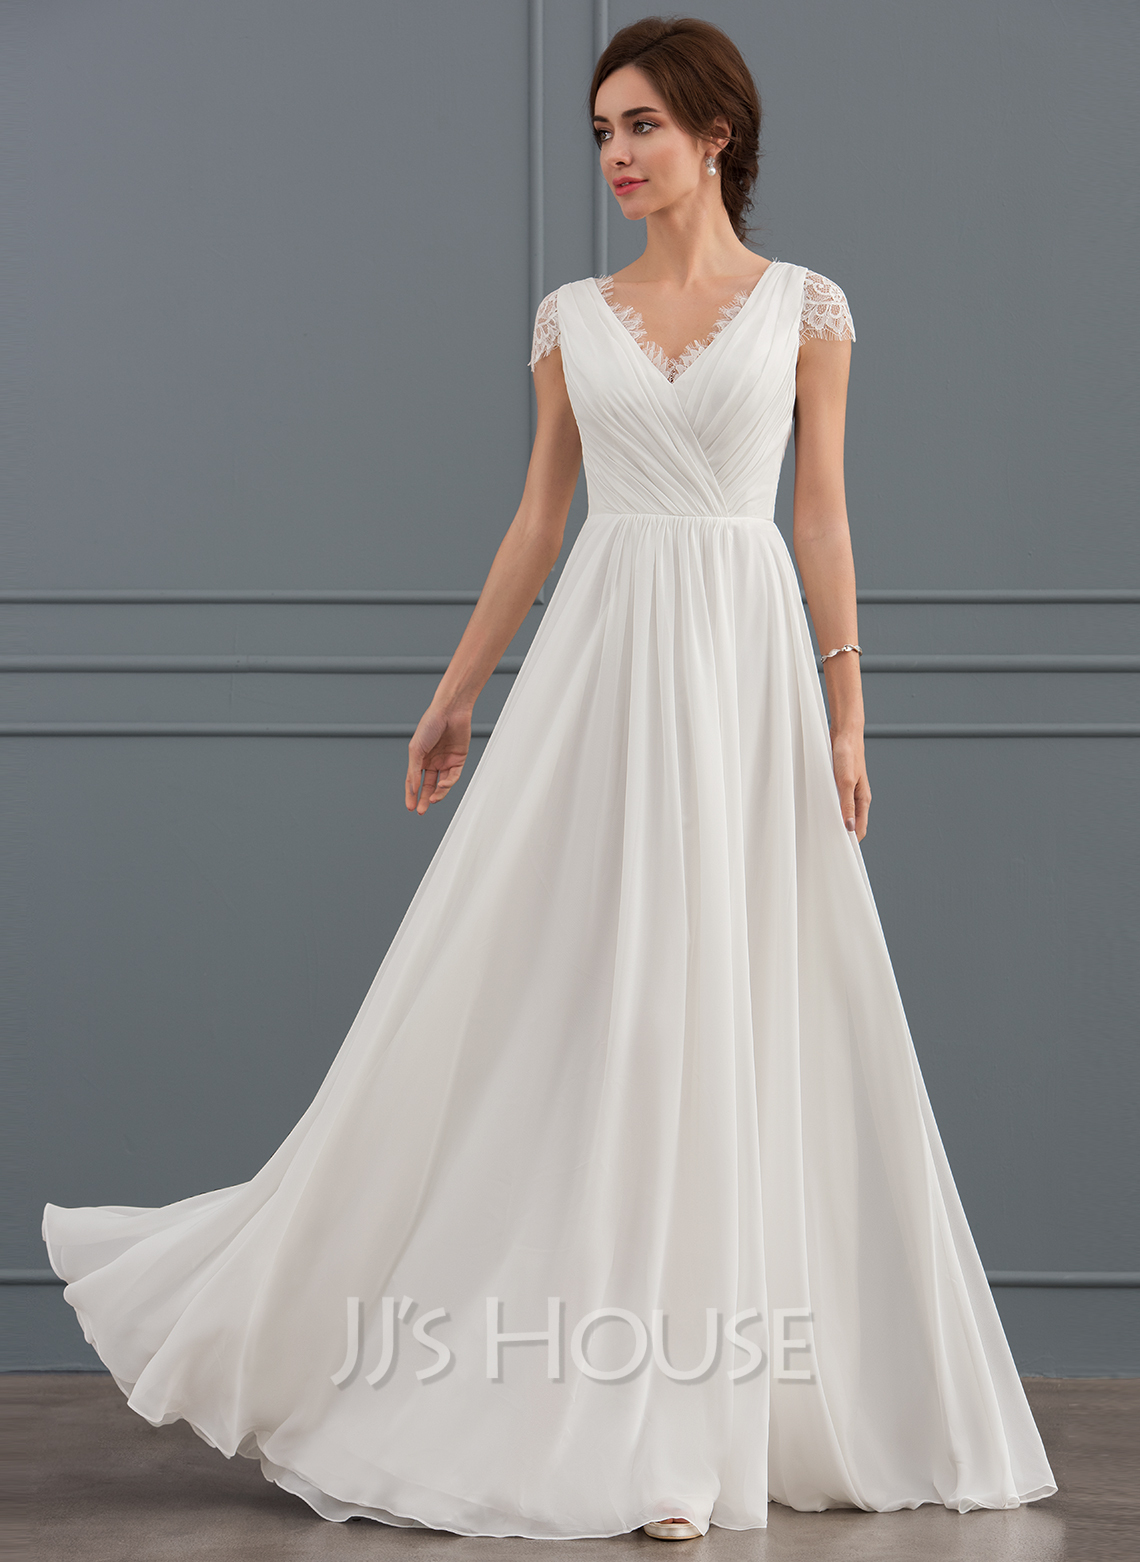 A Line Wedding Dresses.A Line V Neck Floor Length Chiffon Lace Wedding Dress With Ruffle 002127339